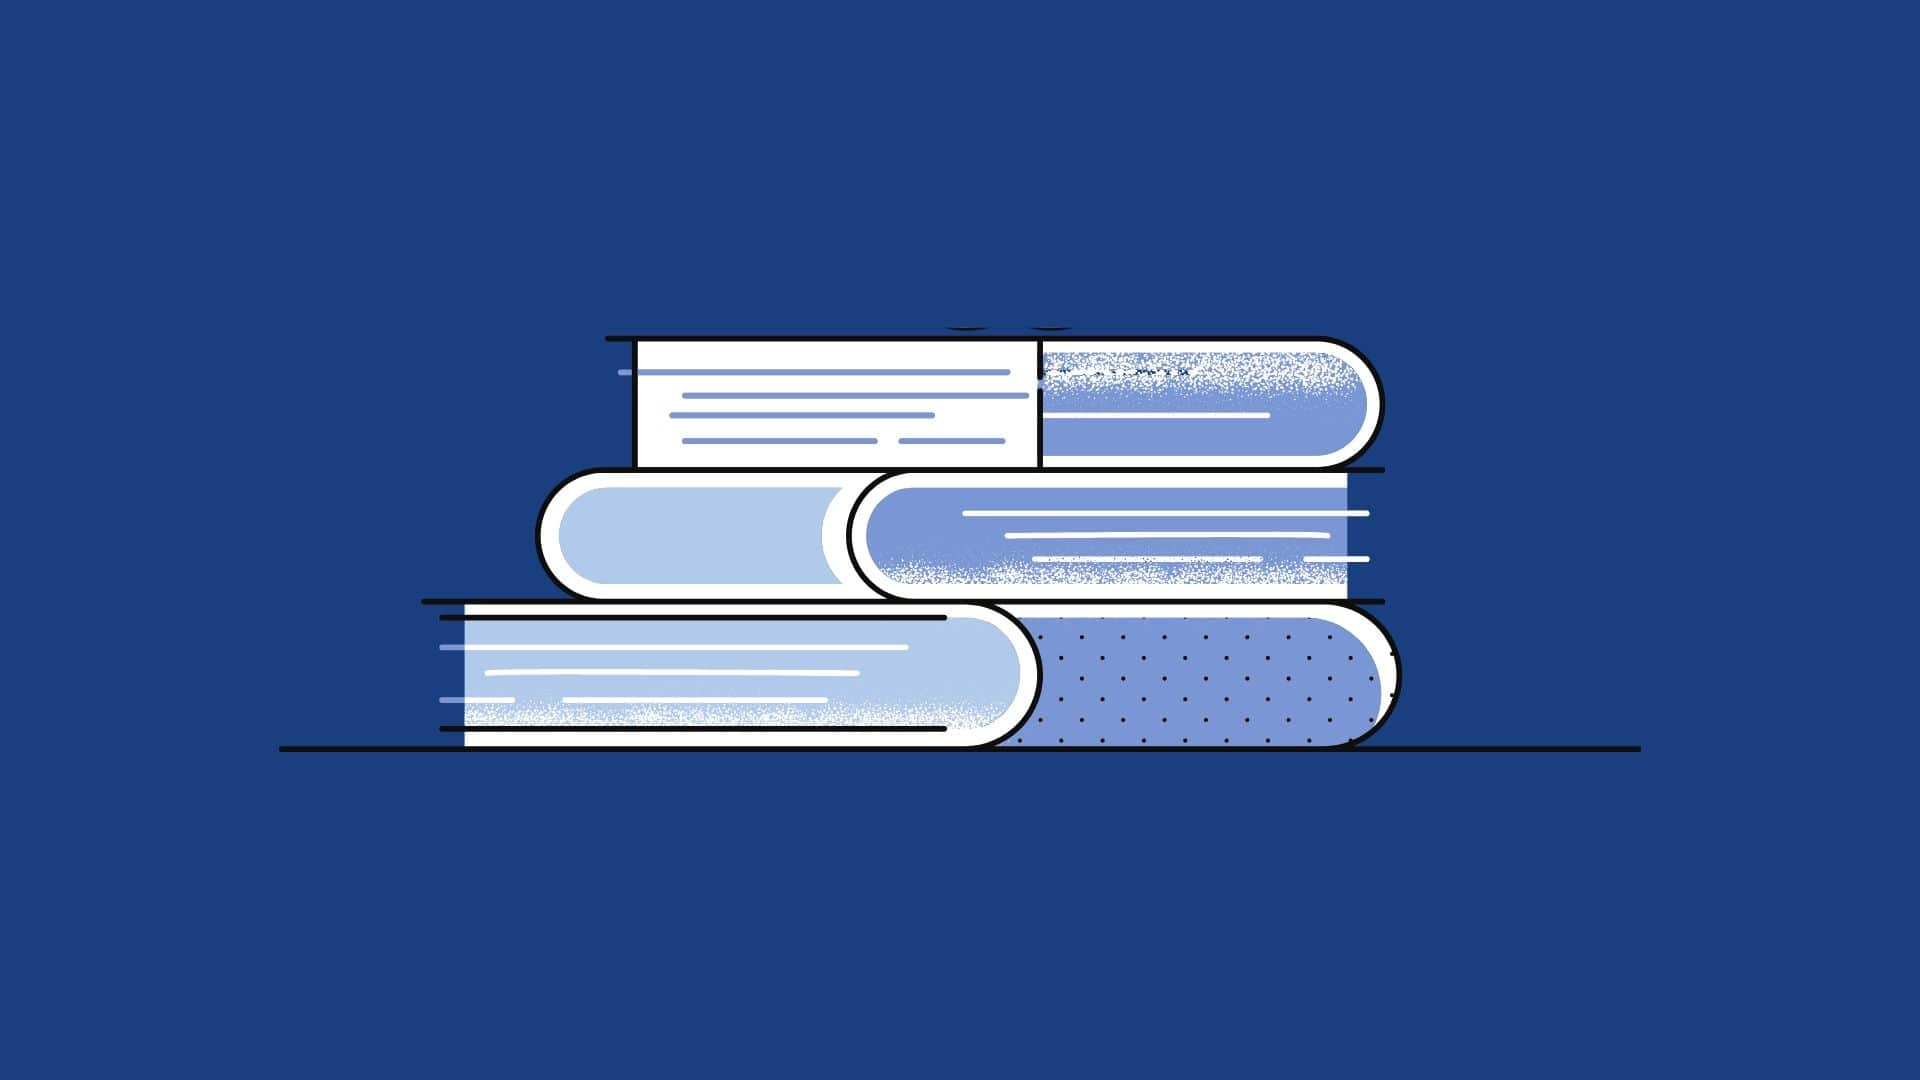 Best Software Engineering Books in 2020